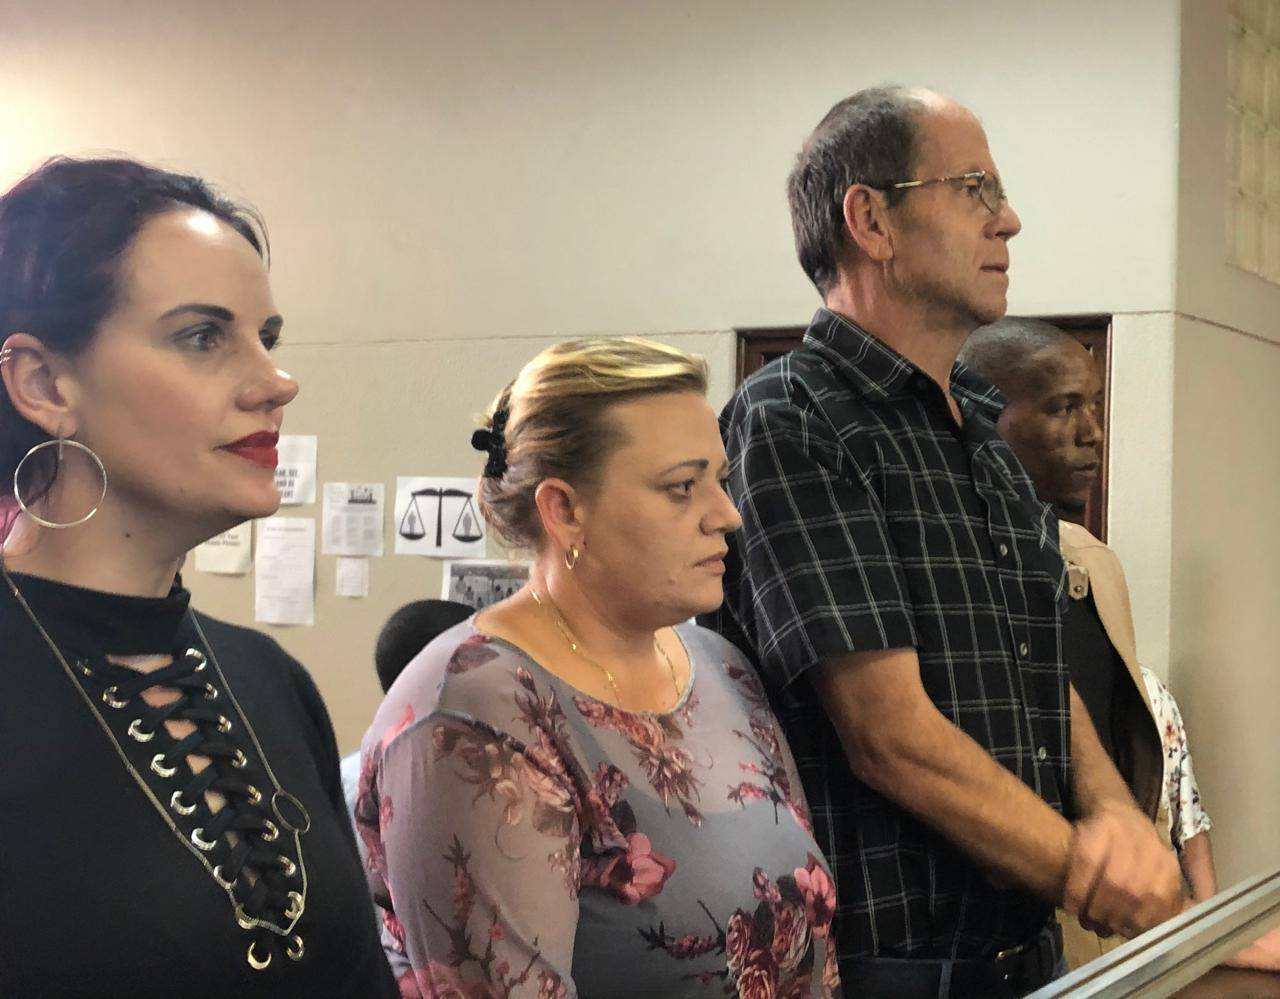 Tharina Human, Laetitia Nel, Pieter van Zyl, and and Bafokeng Molemoh in court. File Photo.